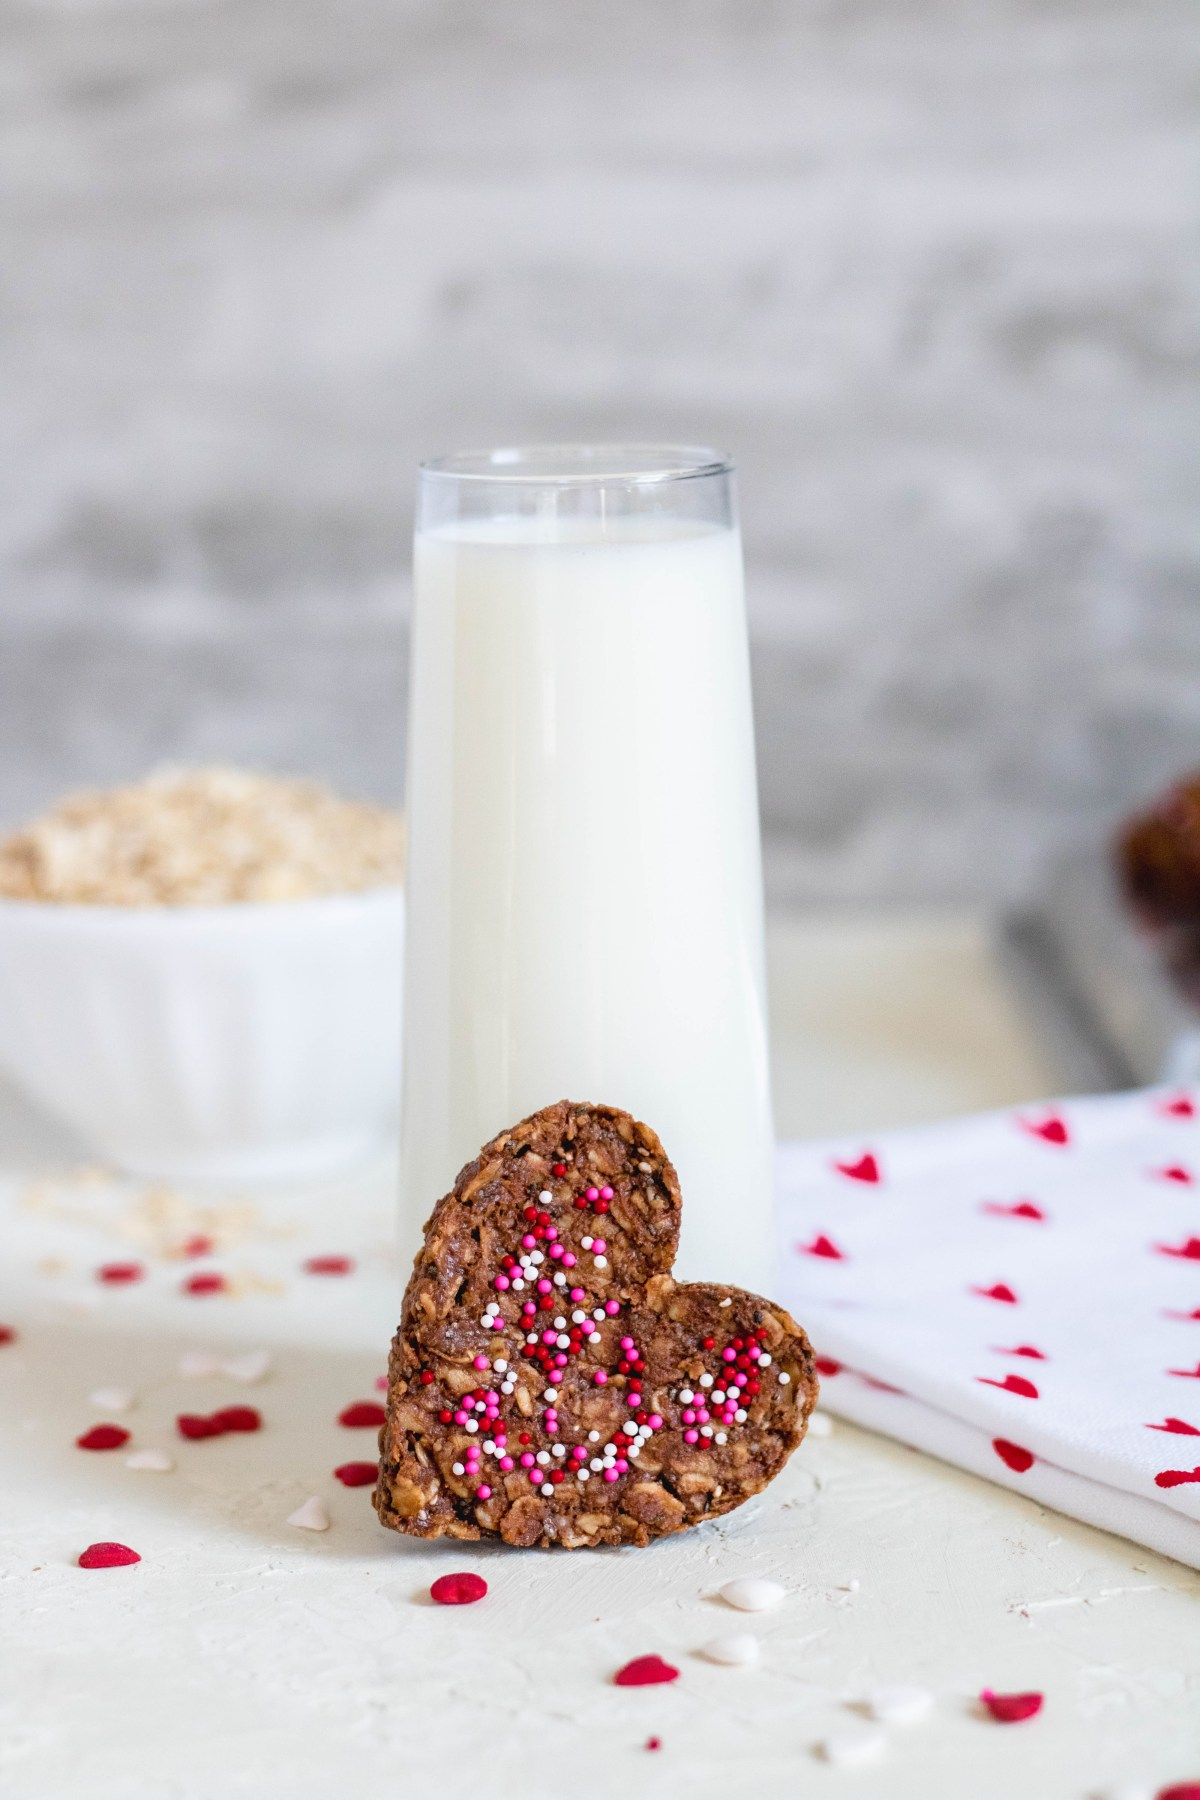 Healthy No Bake Cookies for valentine's day